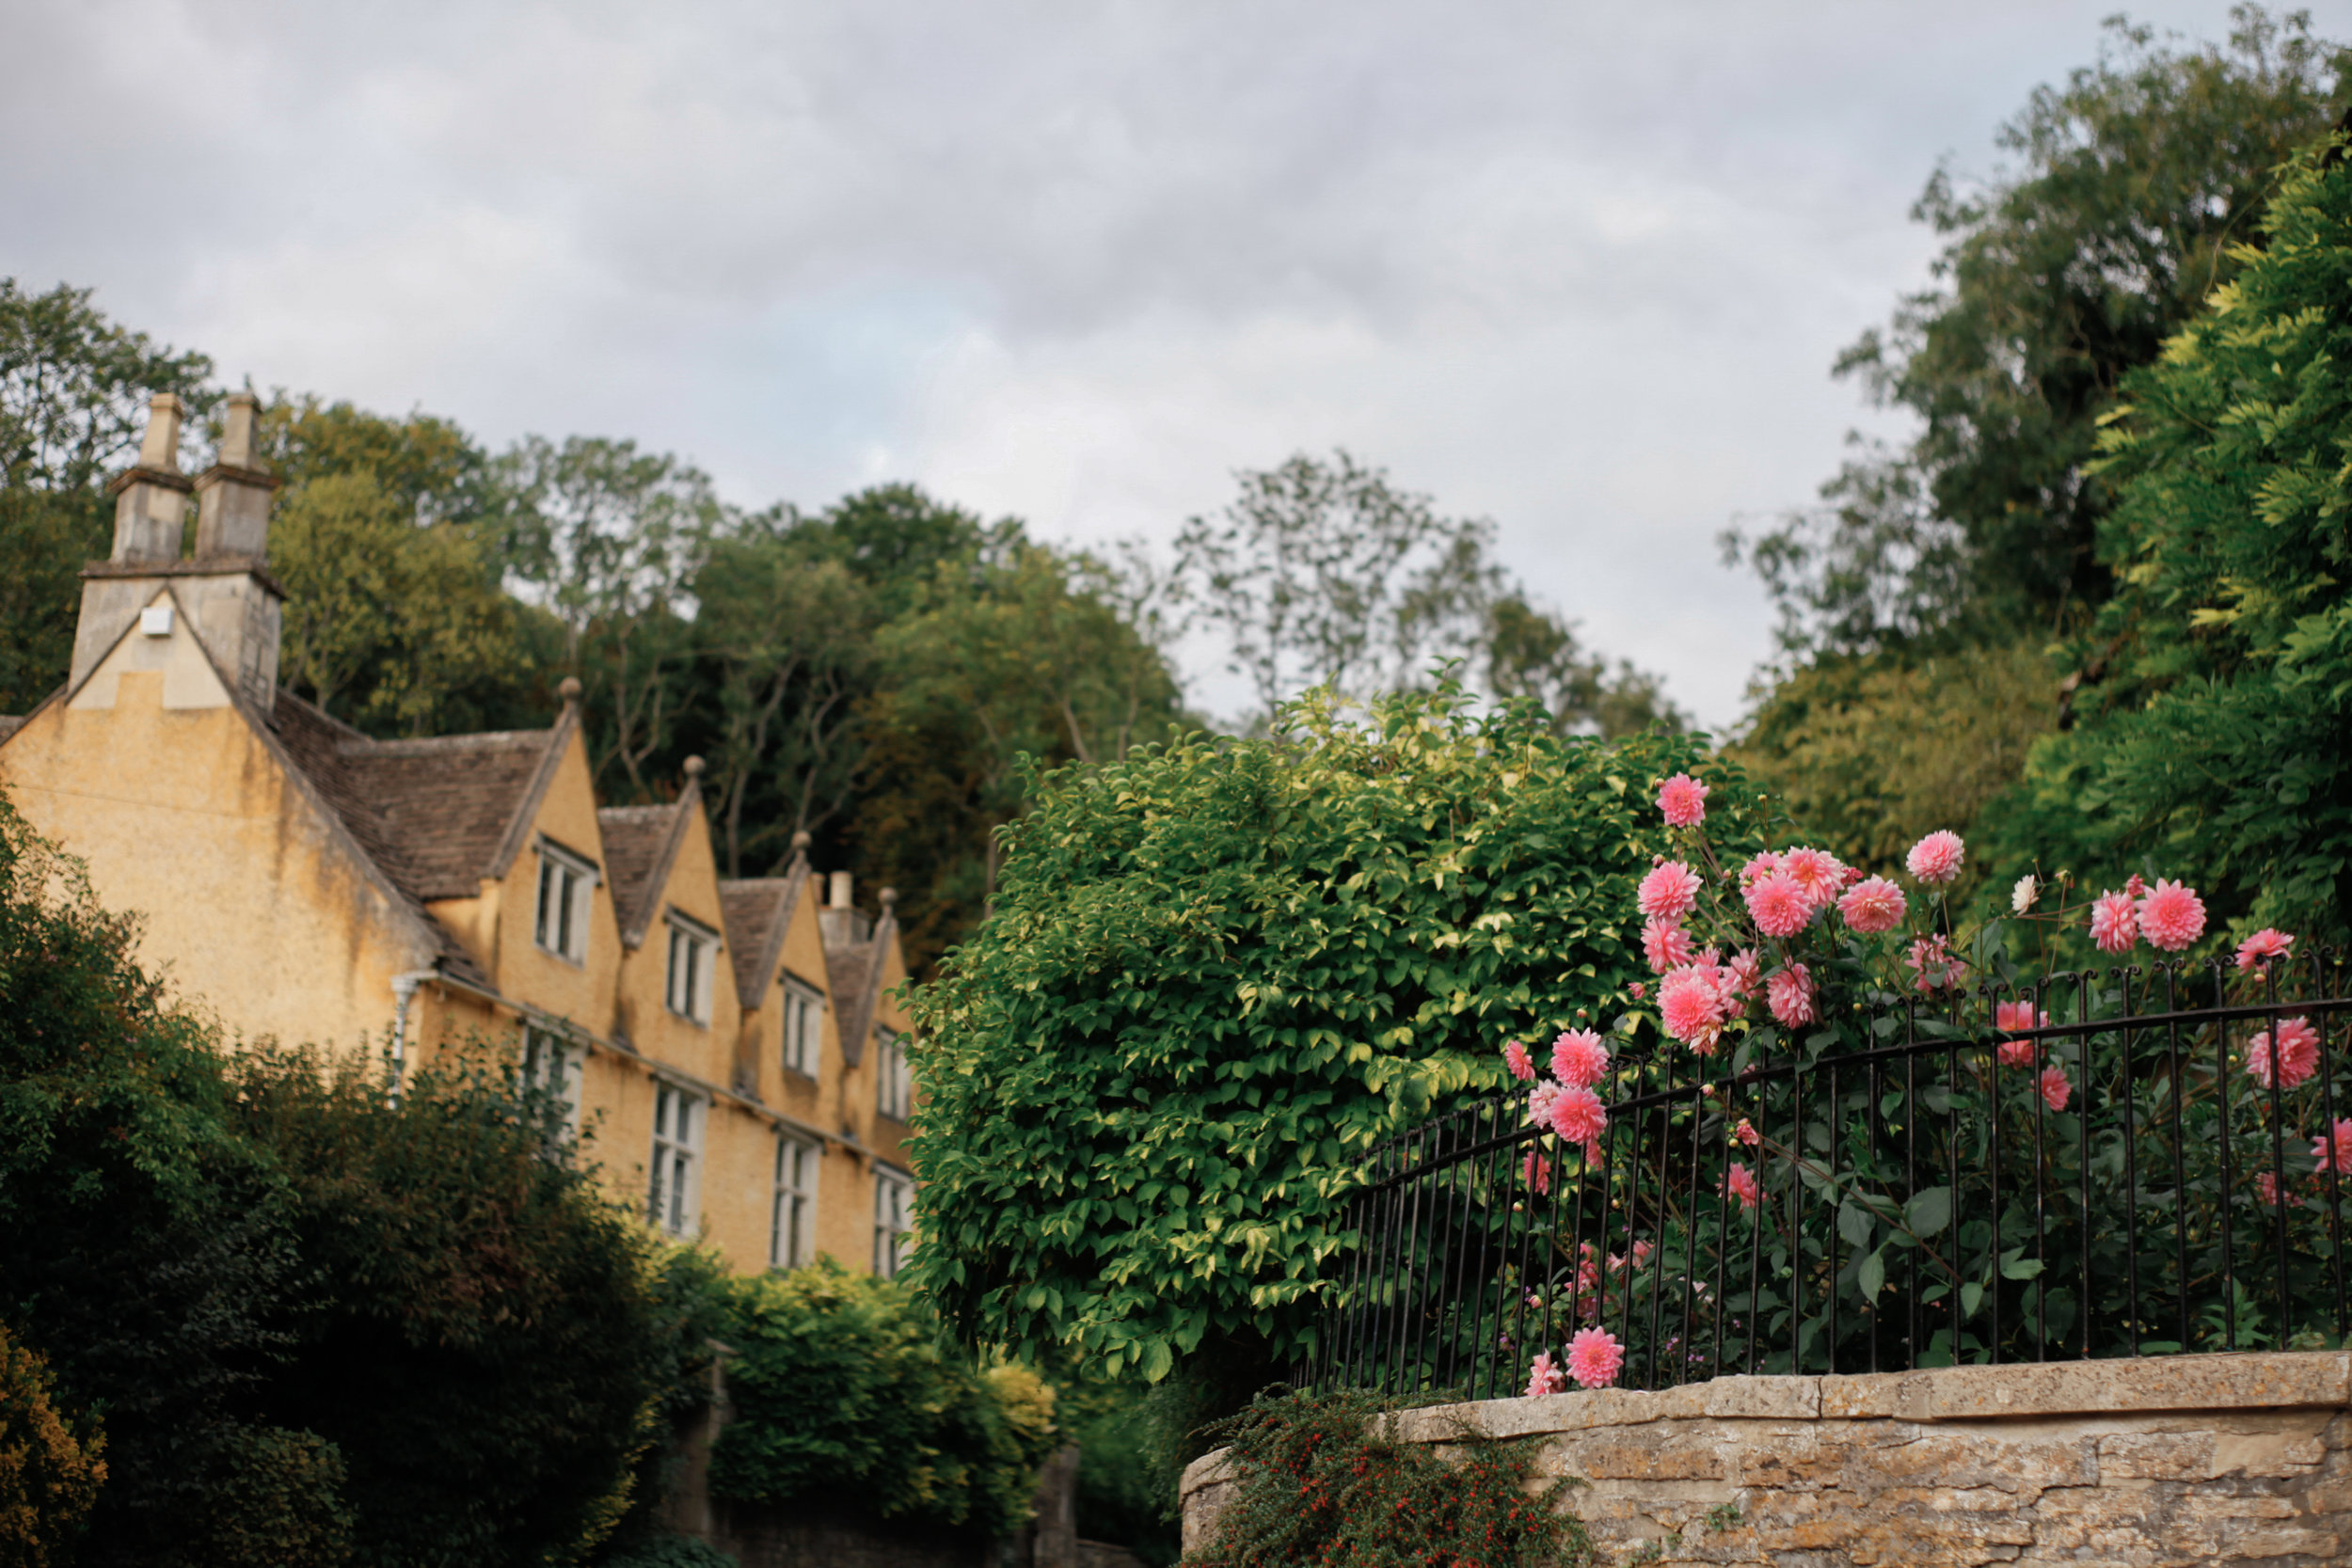 day_three_cotswolds (132 of 133).jpg